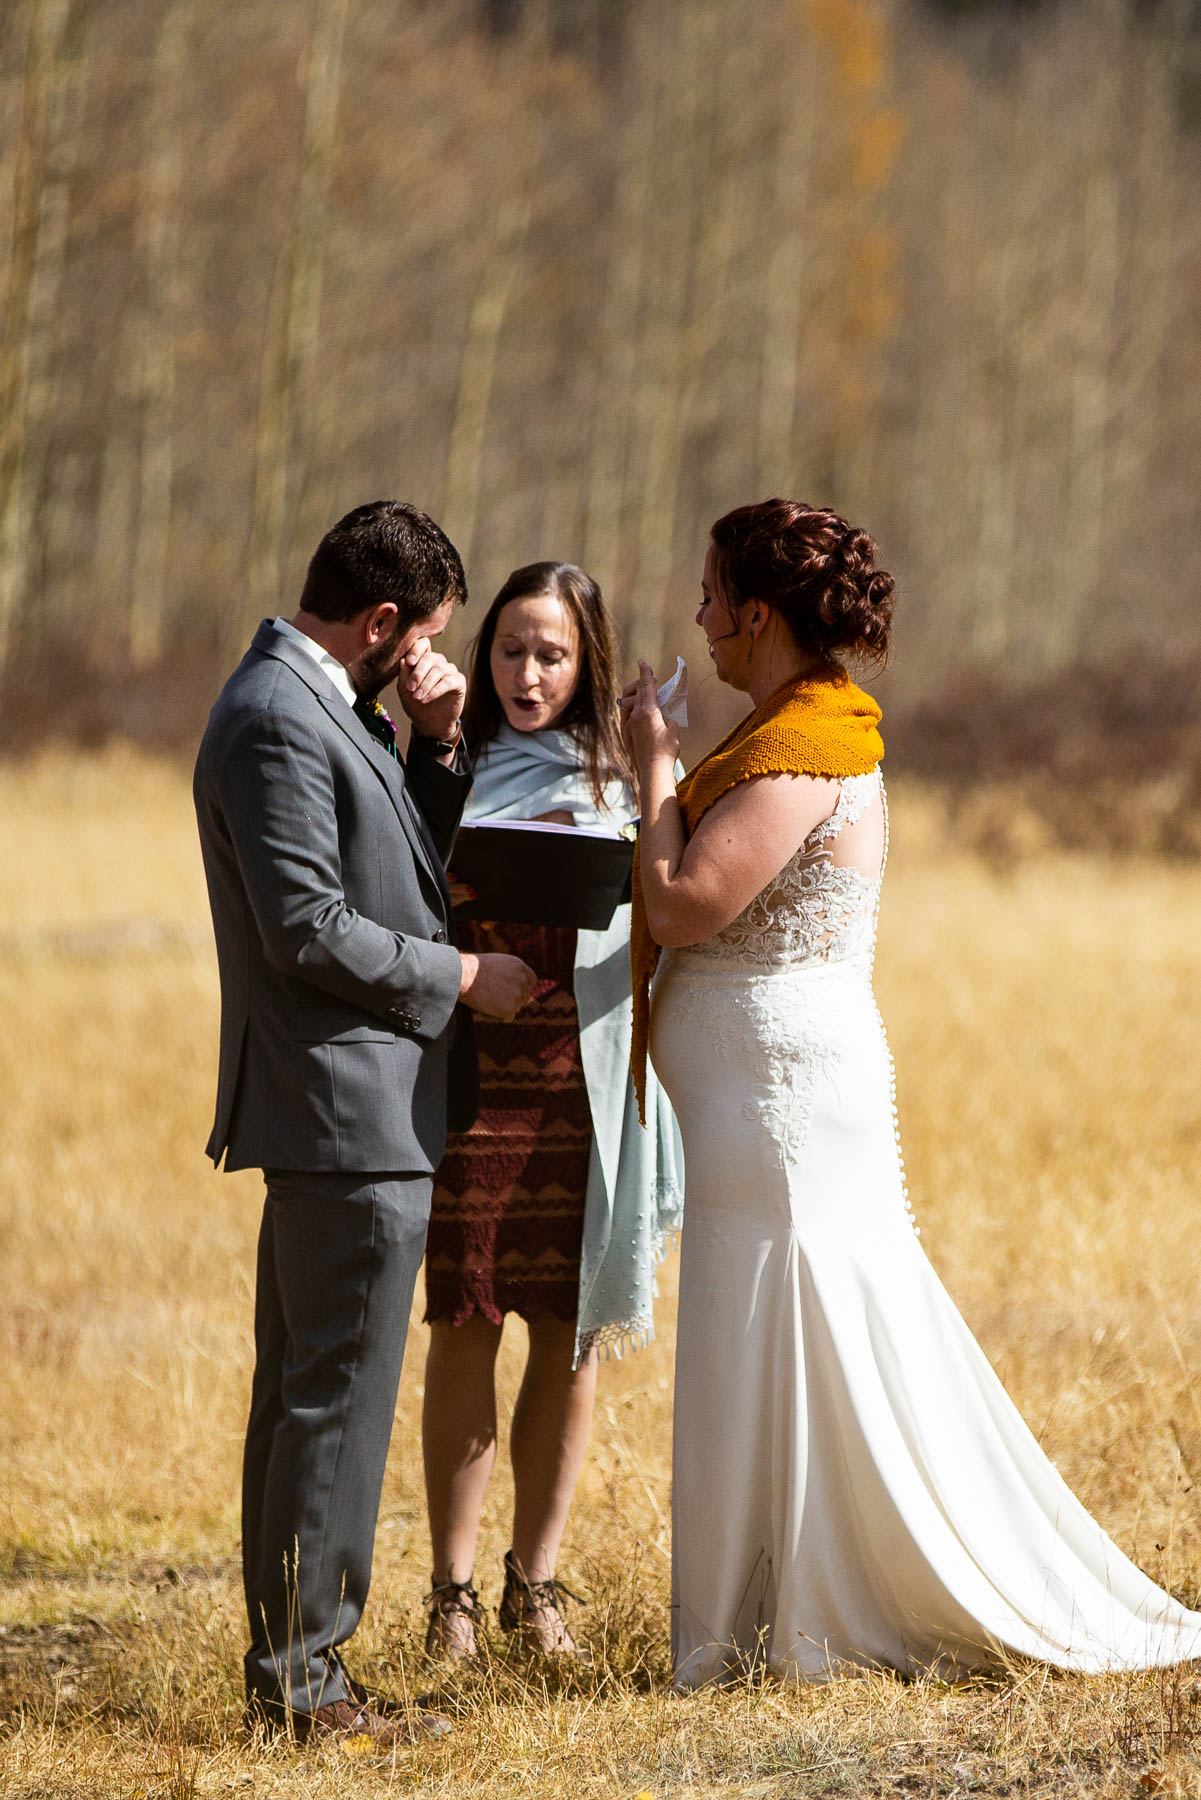 Kenosha Pass Colorado Weddings - Outdoor Ceremony Photos | The grooms emotions come to the surface as he finally gets to marry his bride